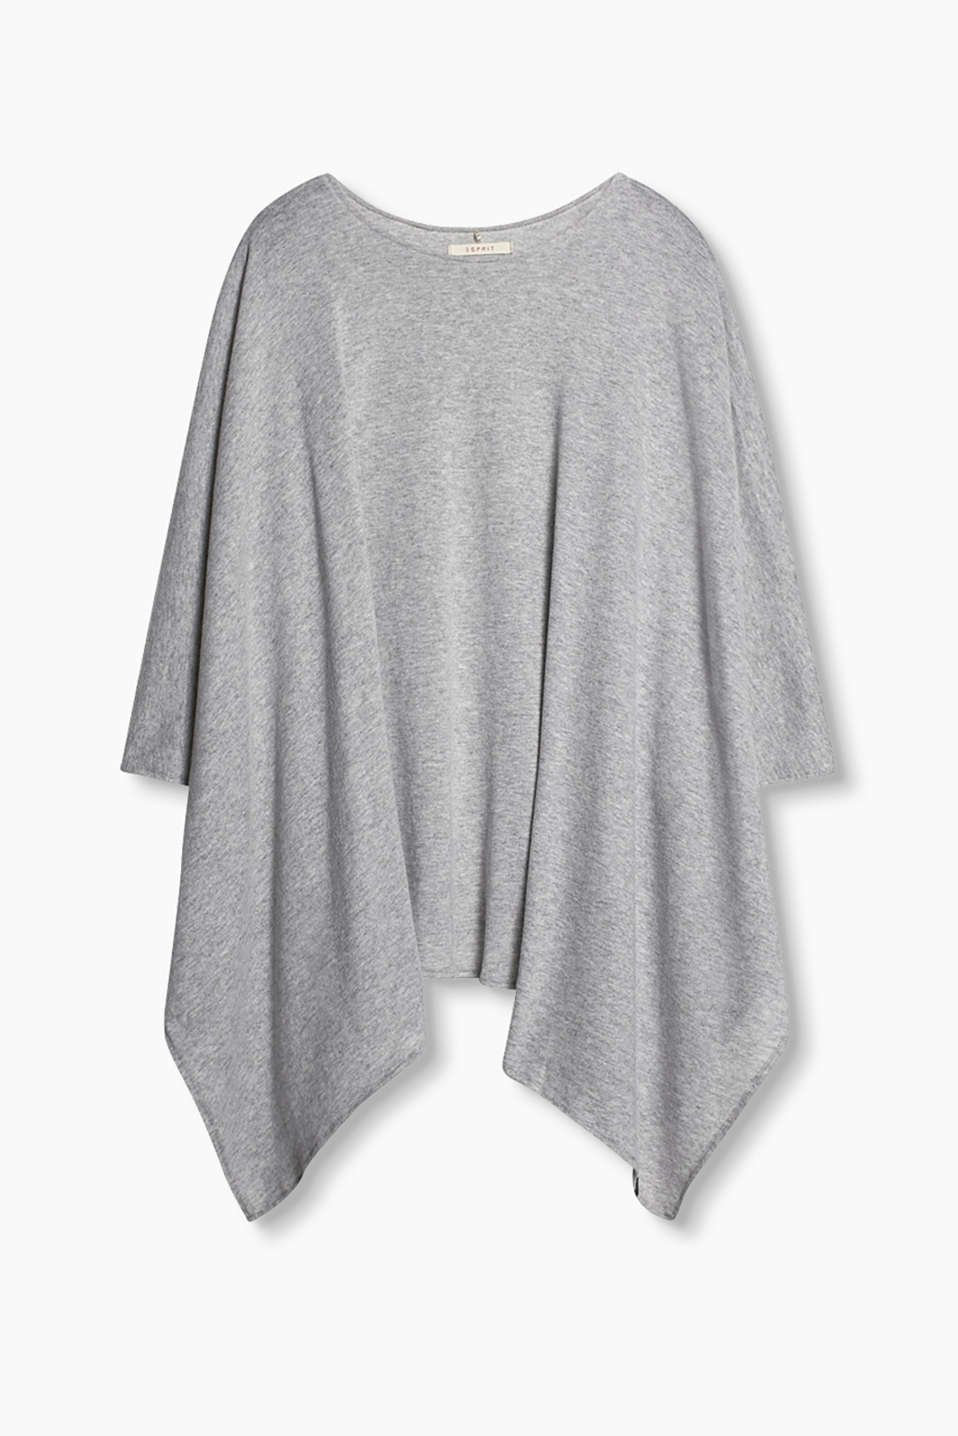 Poncho with a round neckline, made of soft jersey